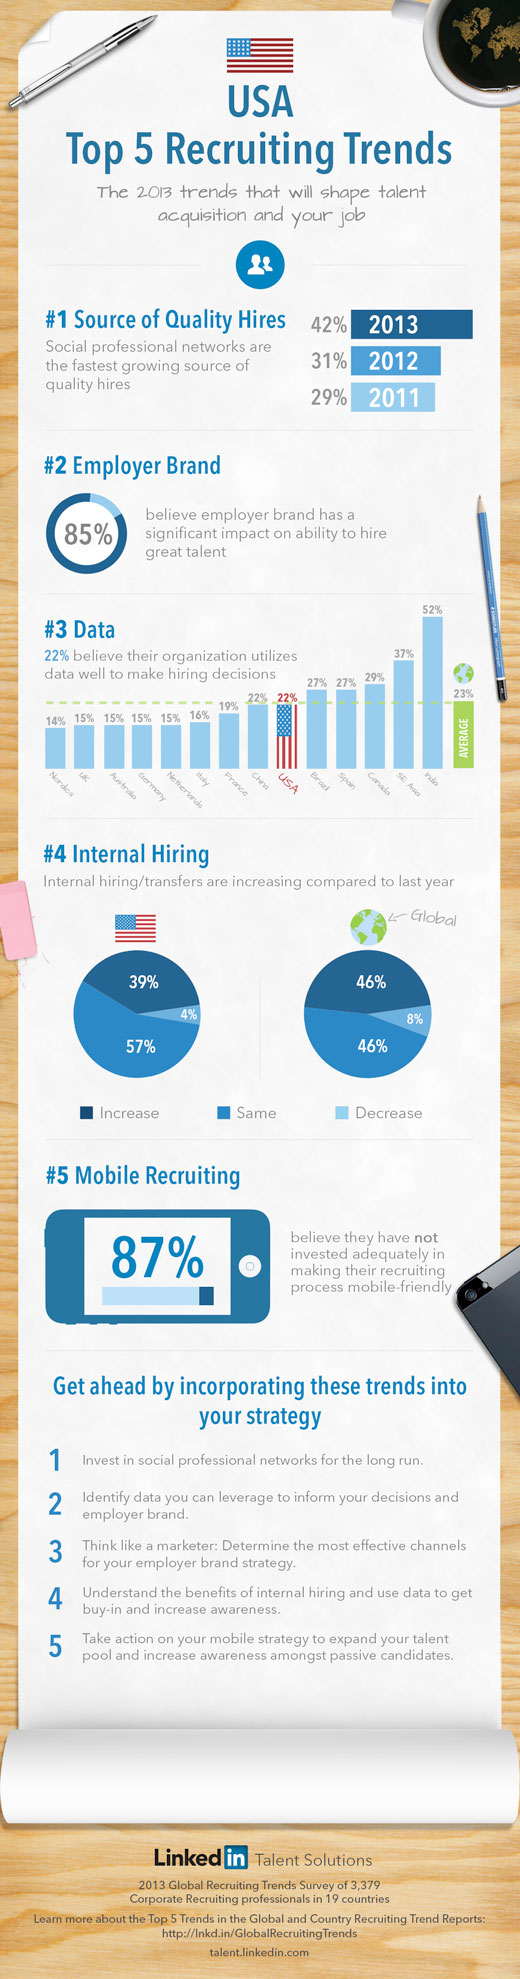 top-recruiting-trends-usa-